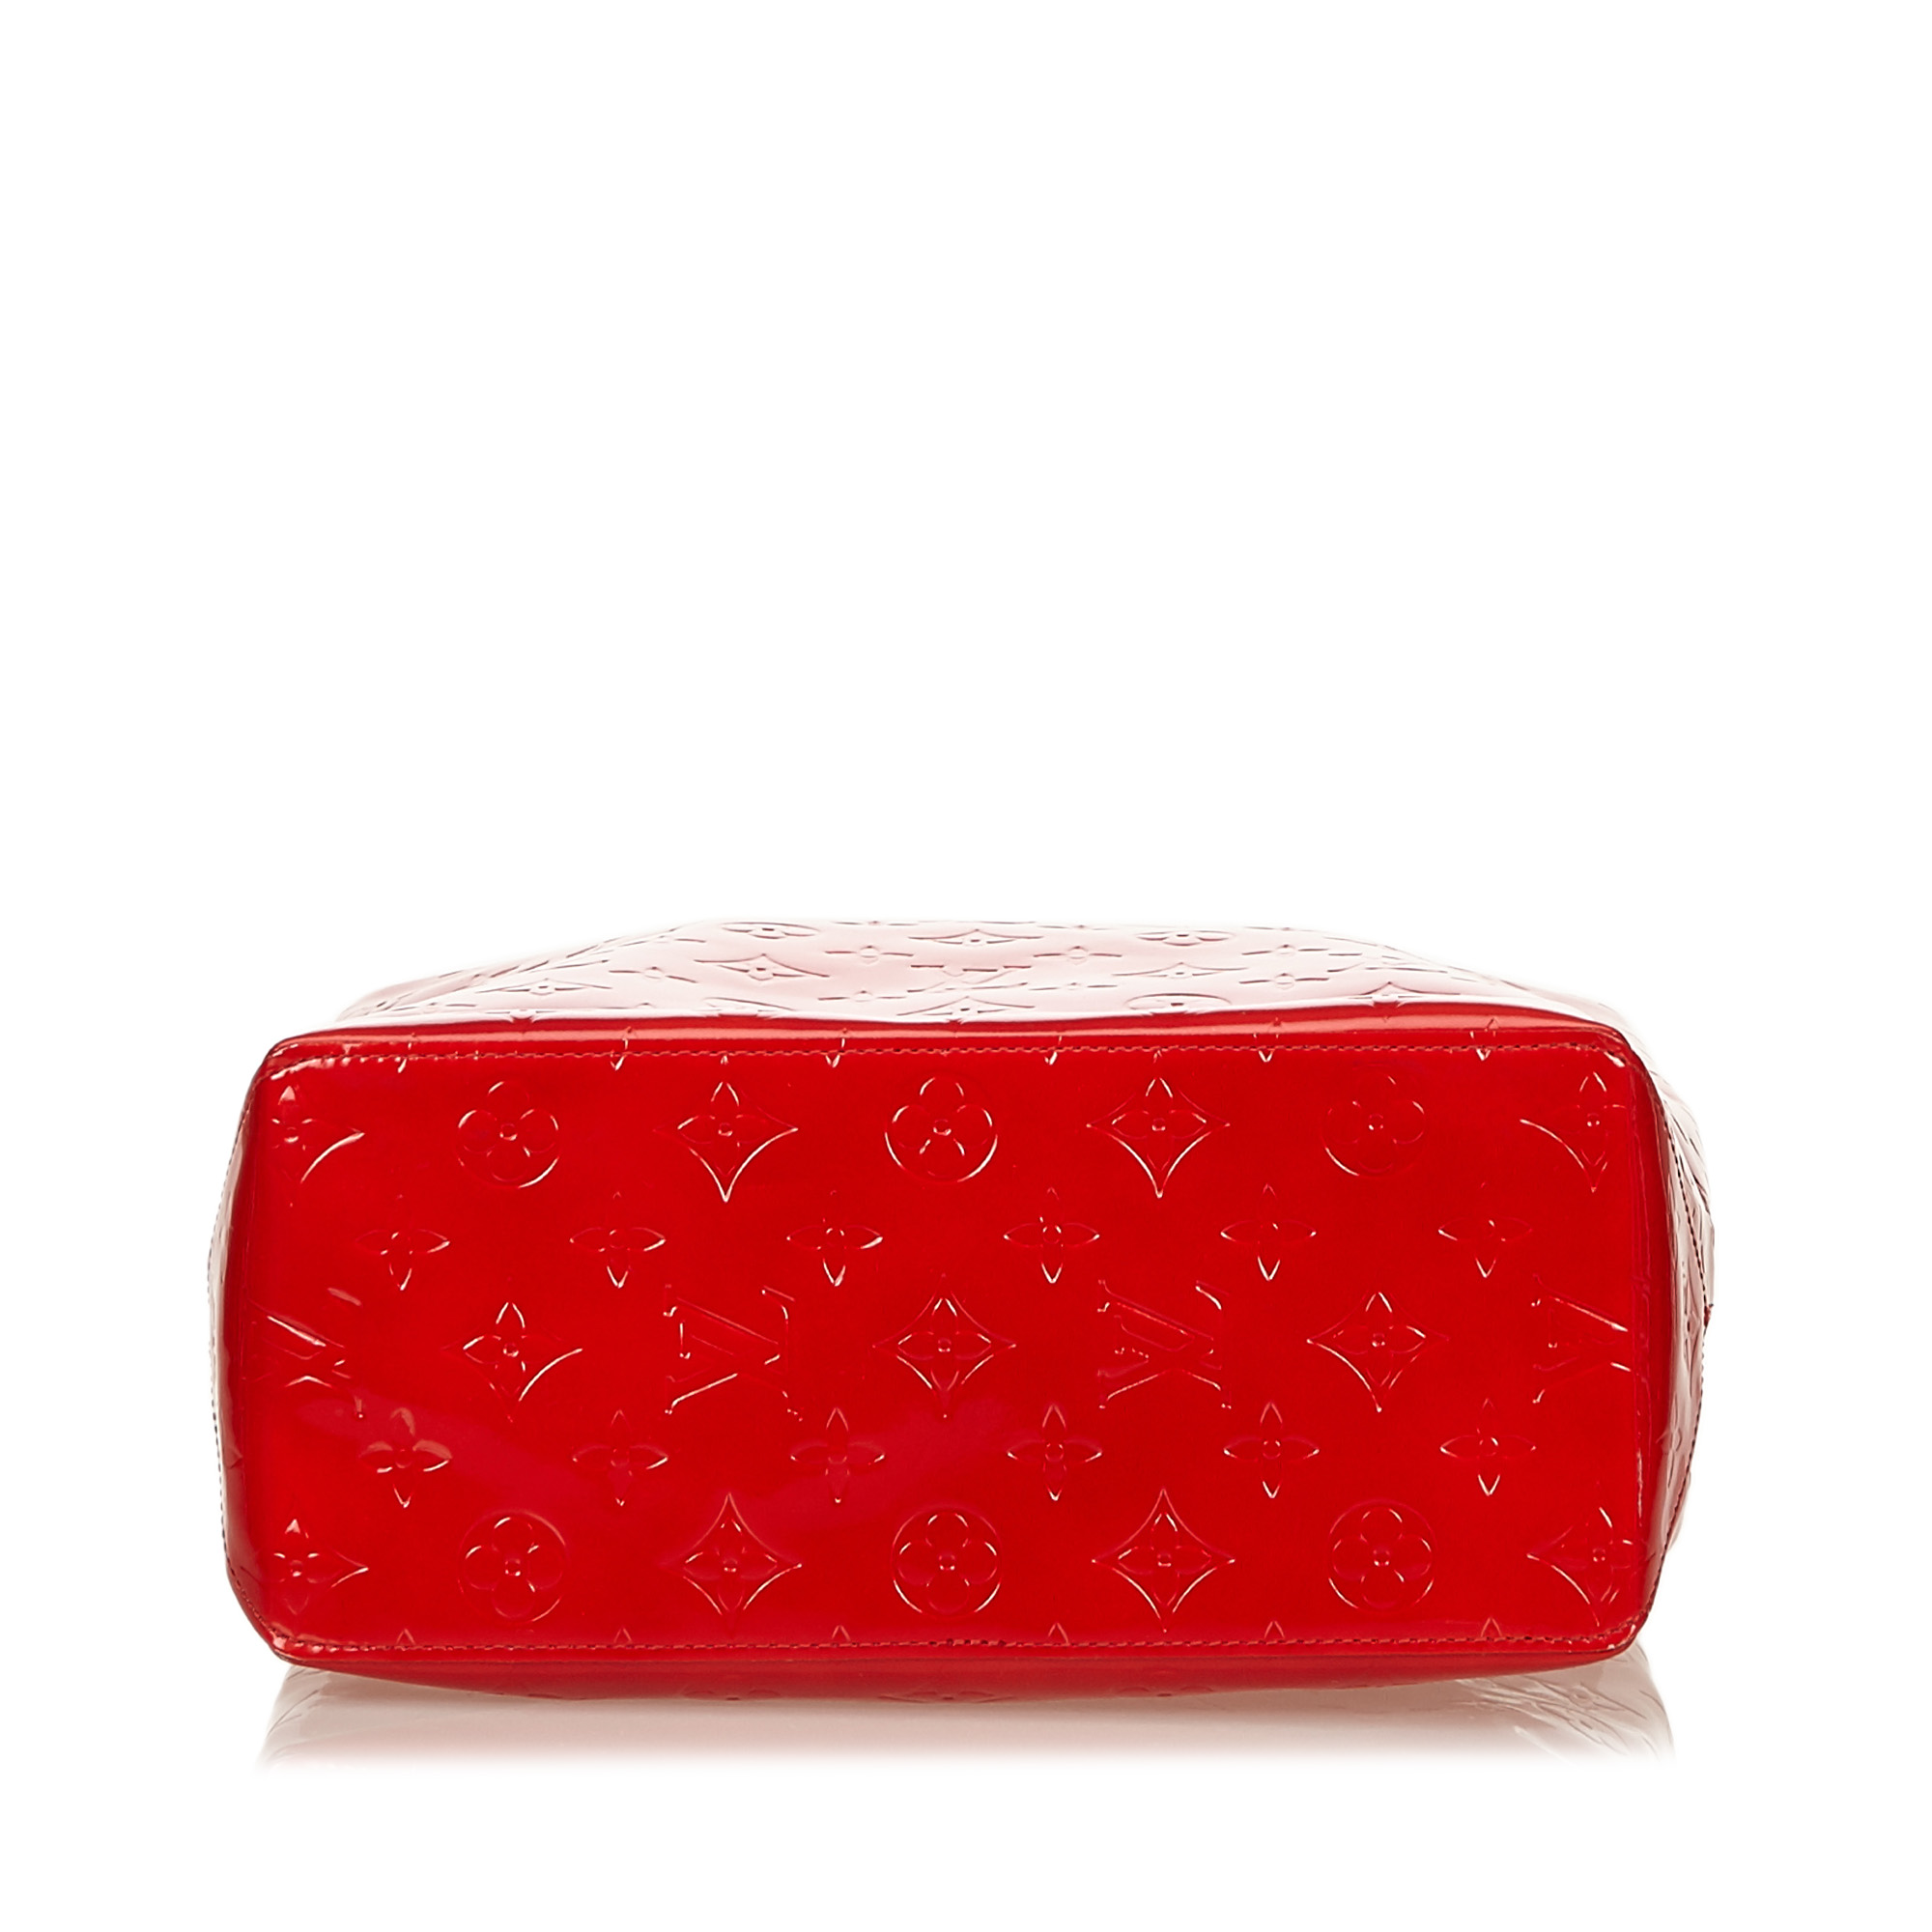 Louis Vuitton Red Vernis Reade MM